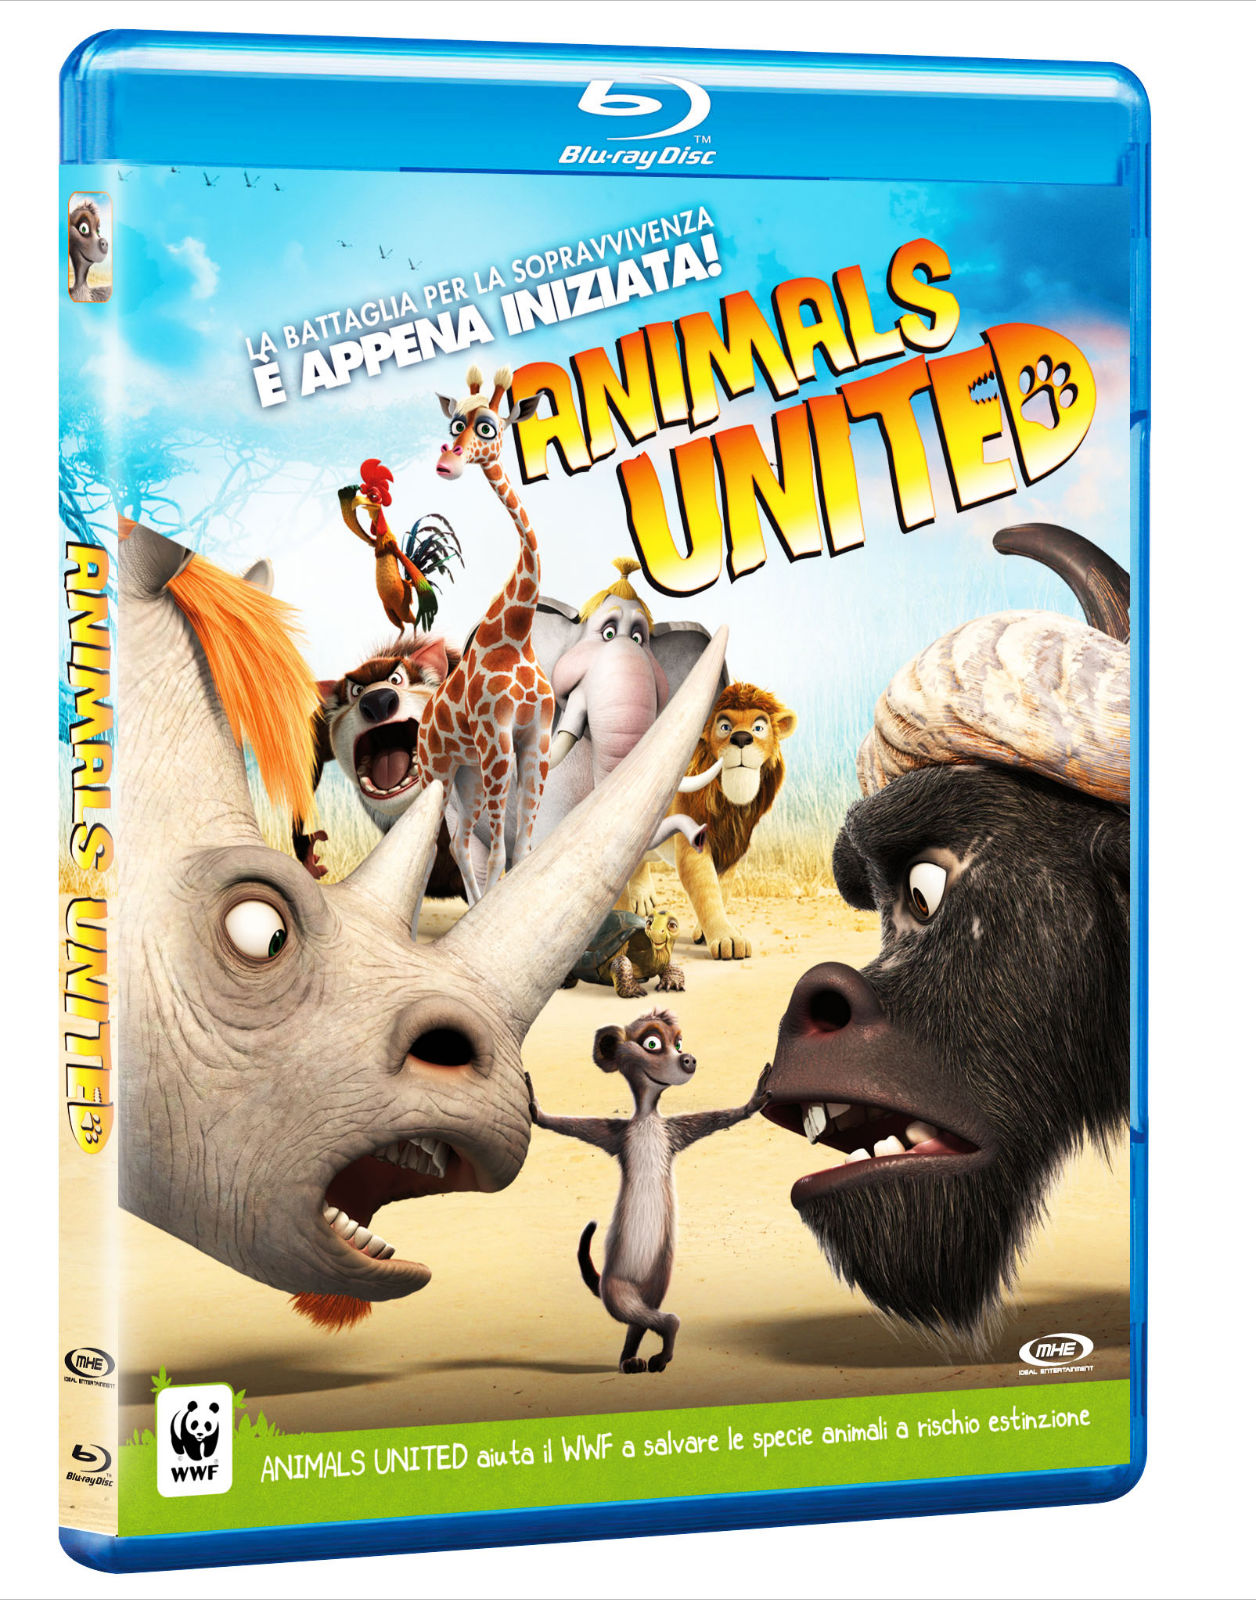 Animals united blu-ray cover